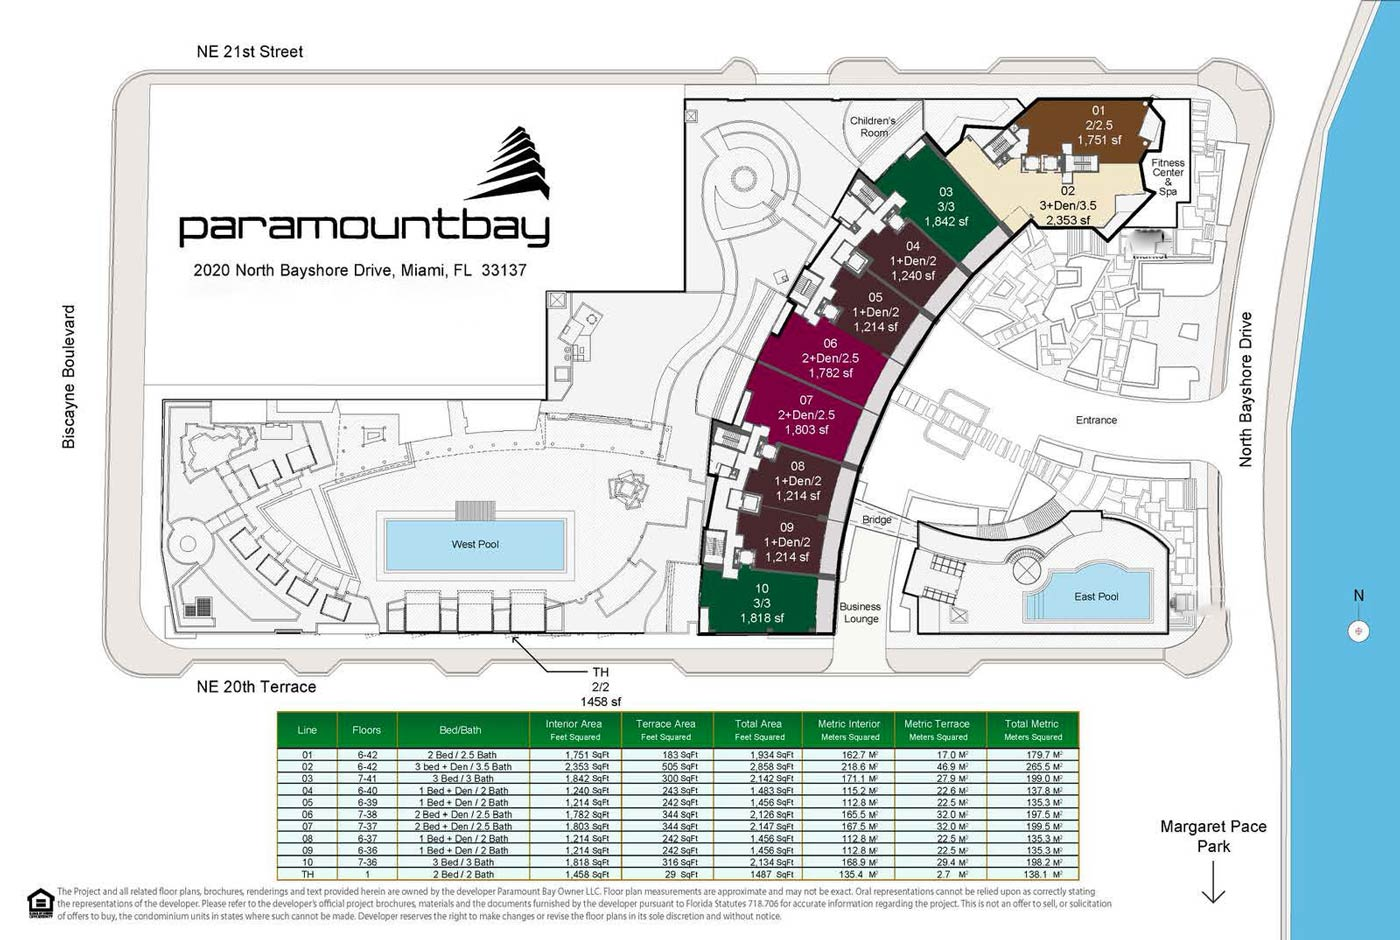 Paramount Bay Miami Unit and Common Area Layout